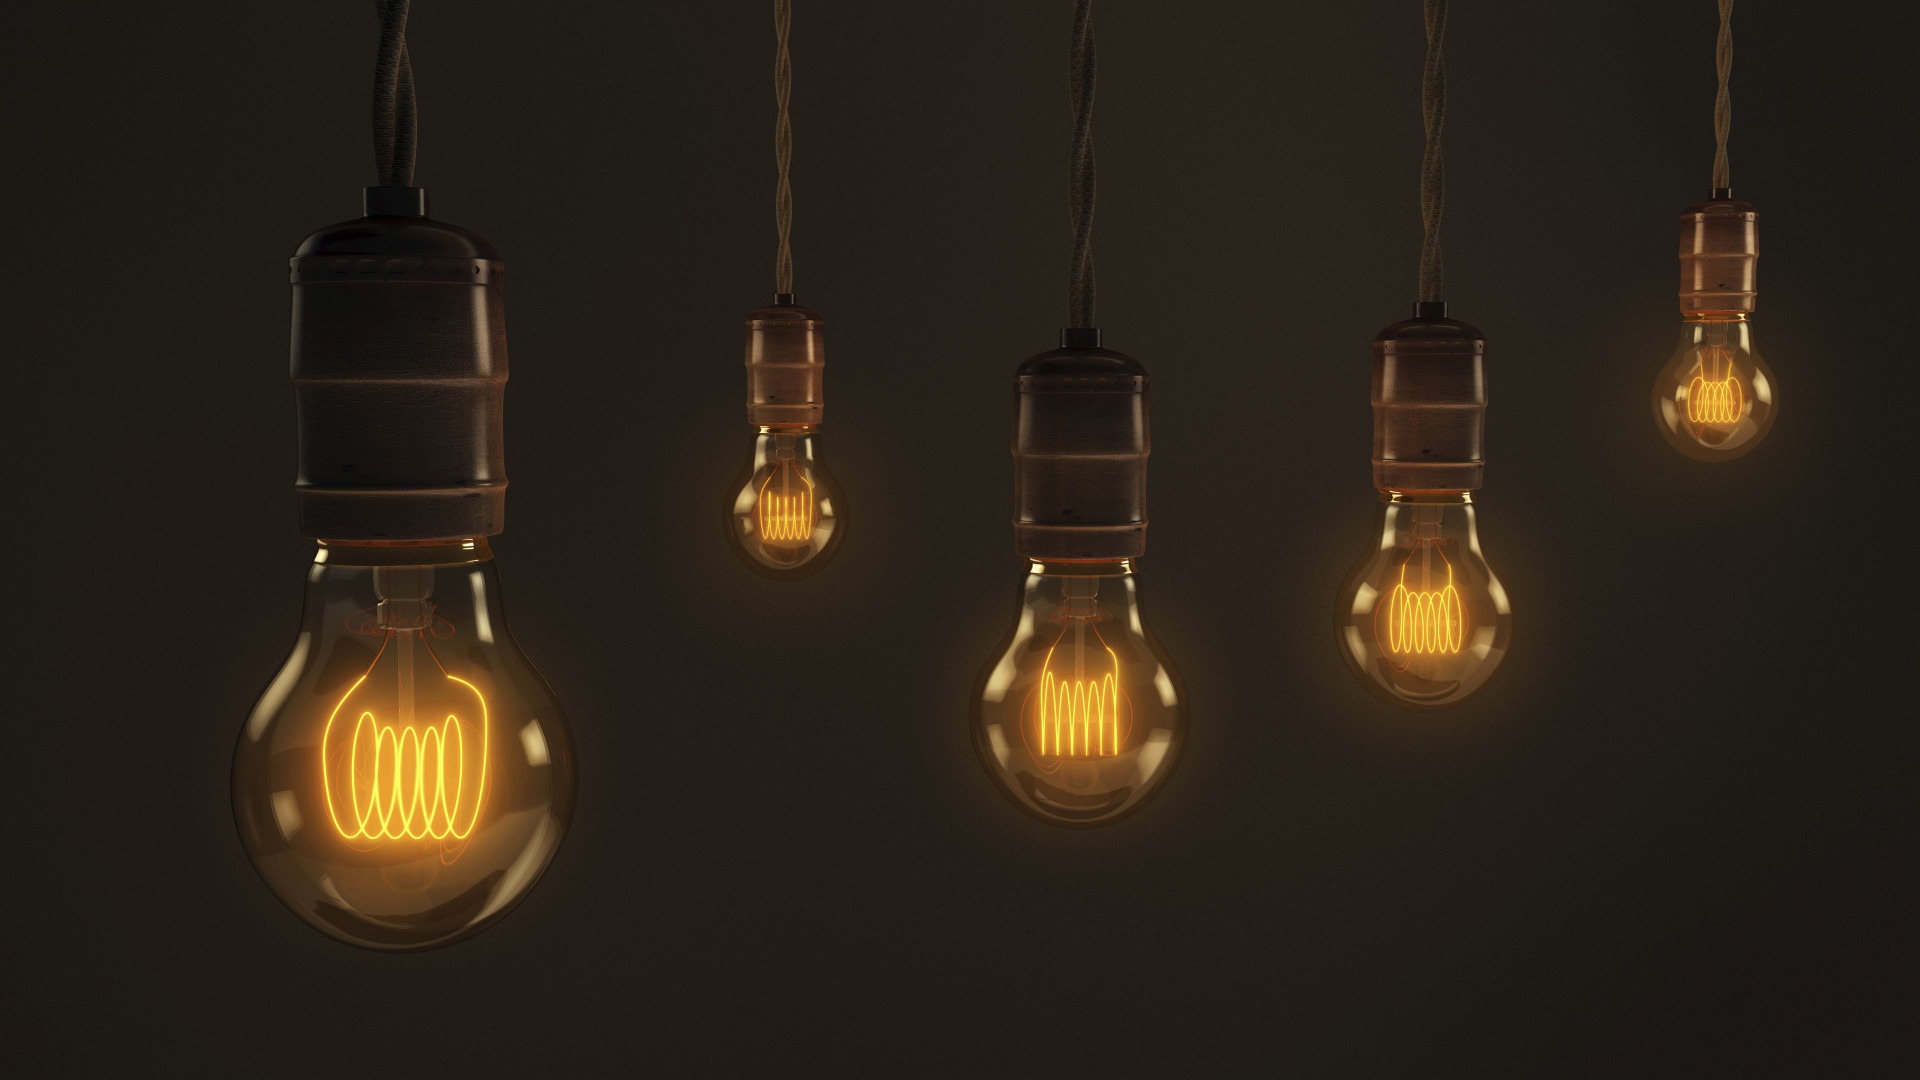 A quintet of vintage hanging light bulbs over a dark brown